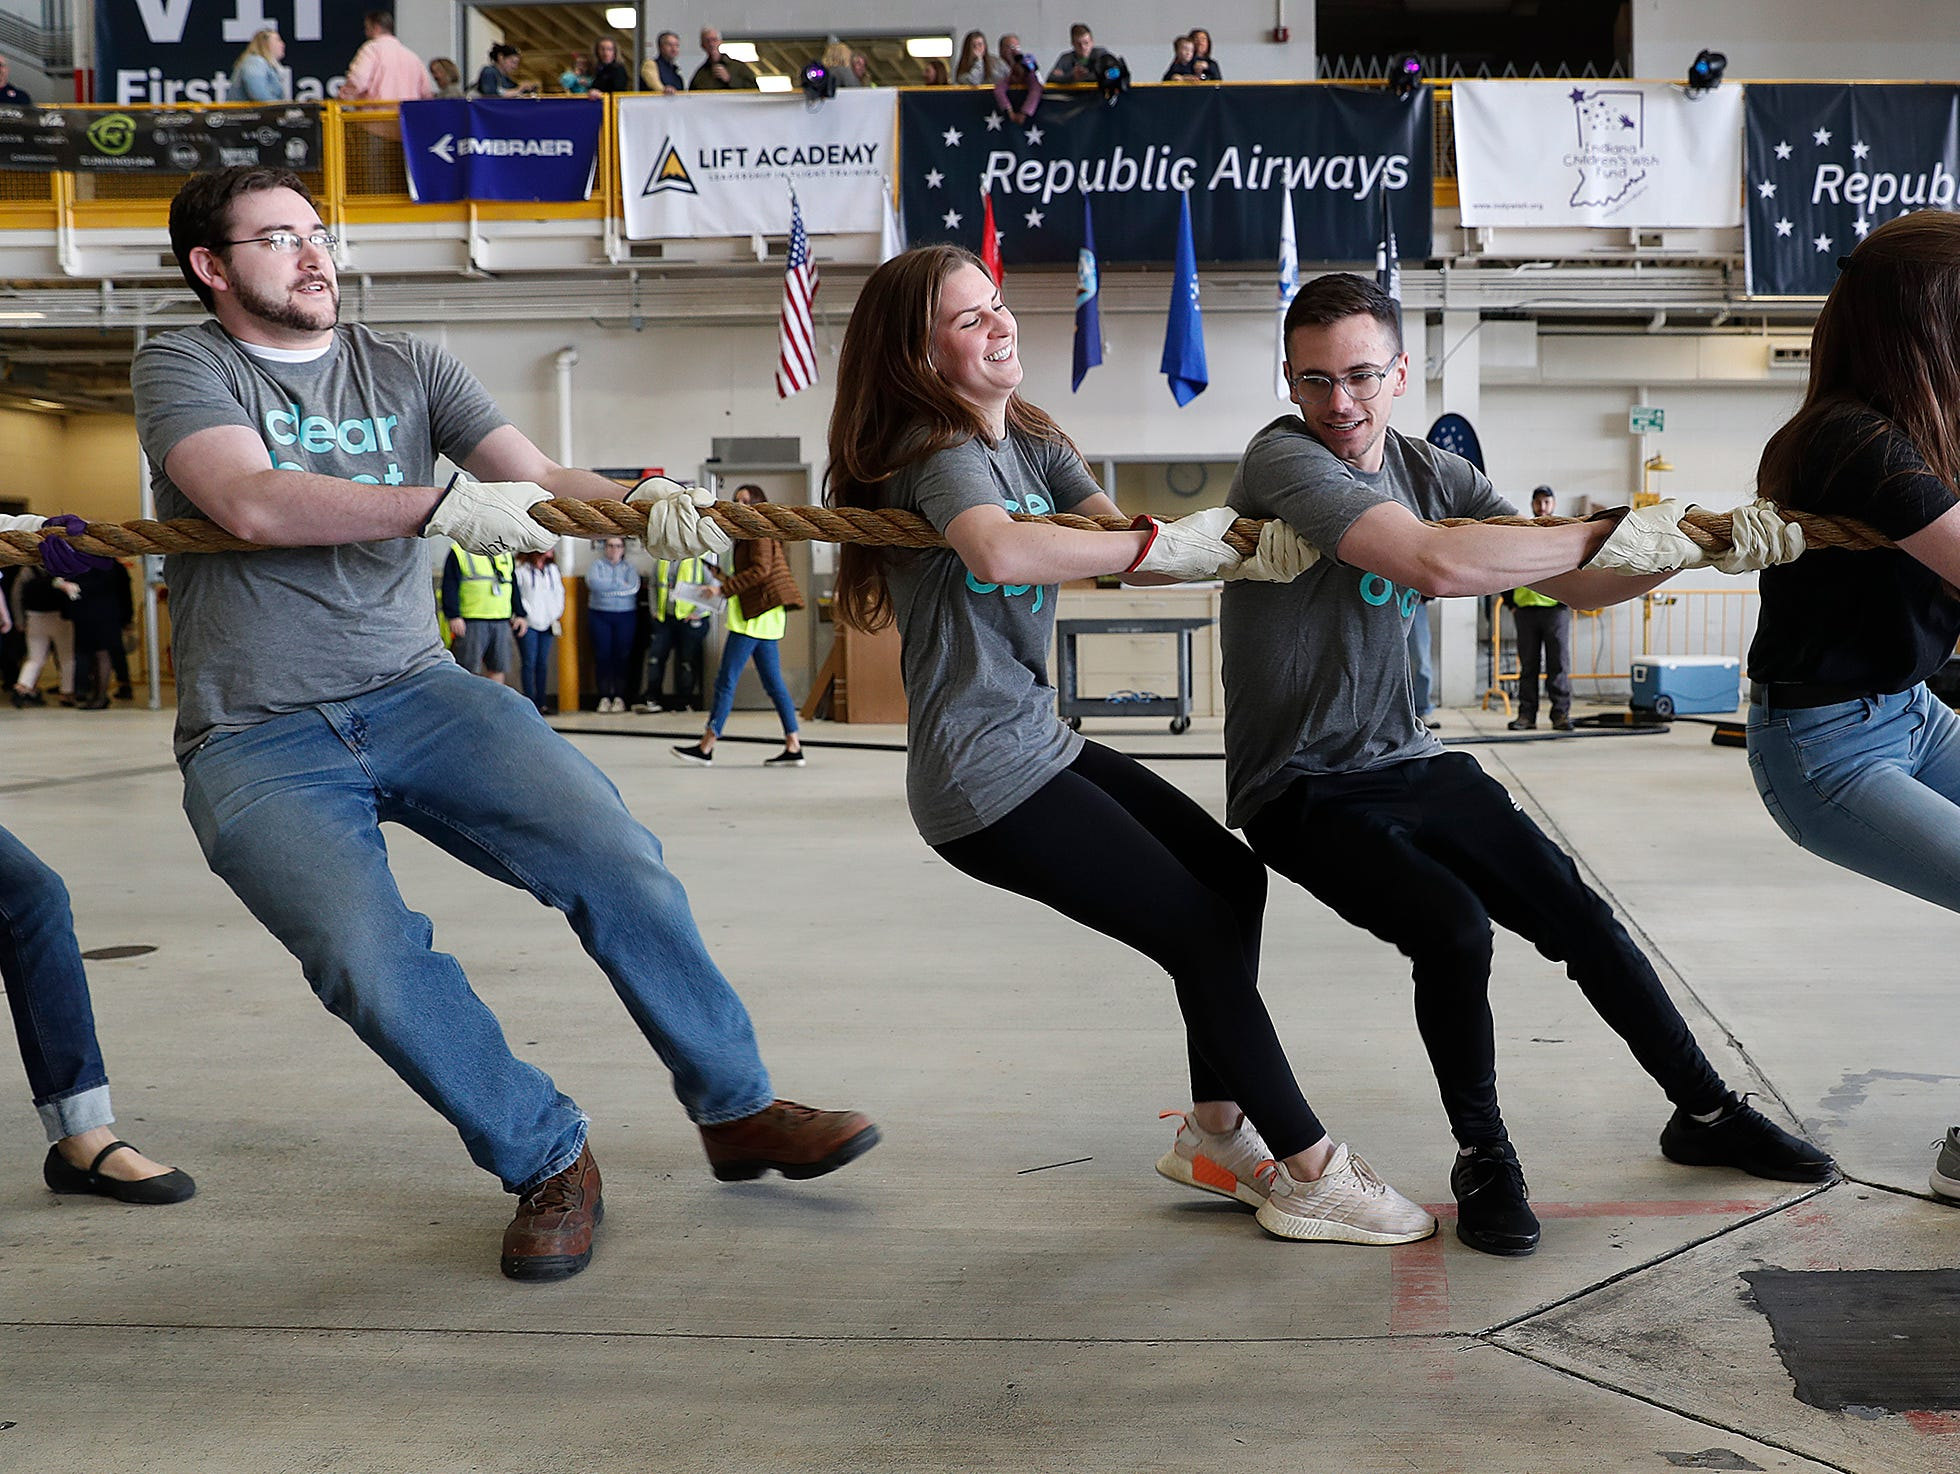 Team ClearObject pulls an Embraer 170/175 aircraft 15 feet during the 9th Annual Republic Airways Plane Pull at the Republic Airways Hanger at the Indianapolis International Airport on Saturday, April 13, 2019.